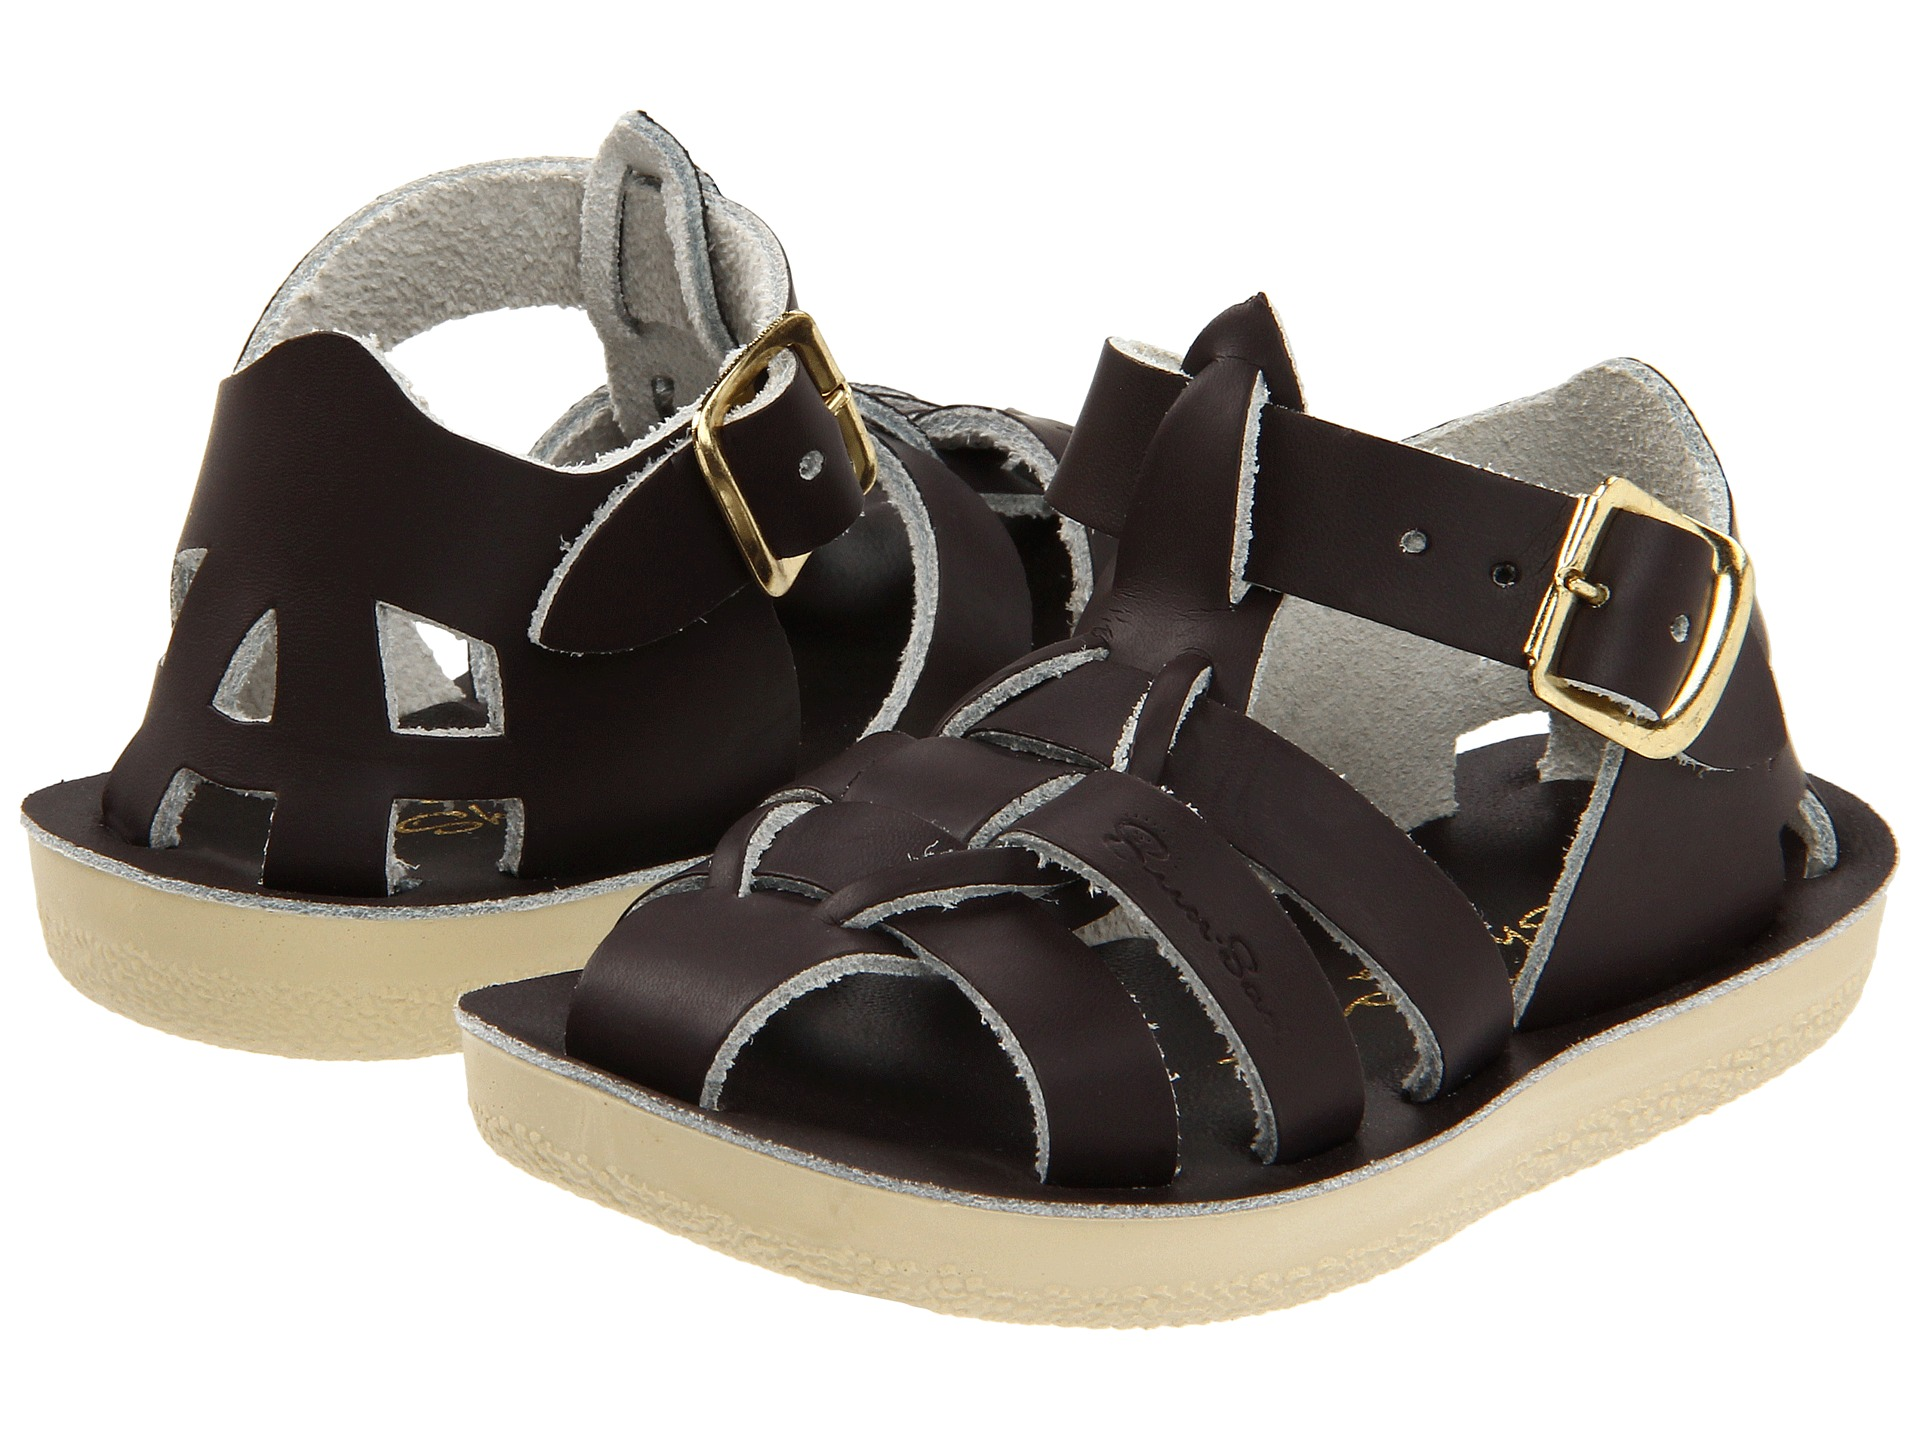 salt water sandal by hoy shoes sun san sharks toddler little kid at. Black Bedroom Furniture Sets. Home Design Ideas